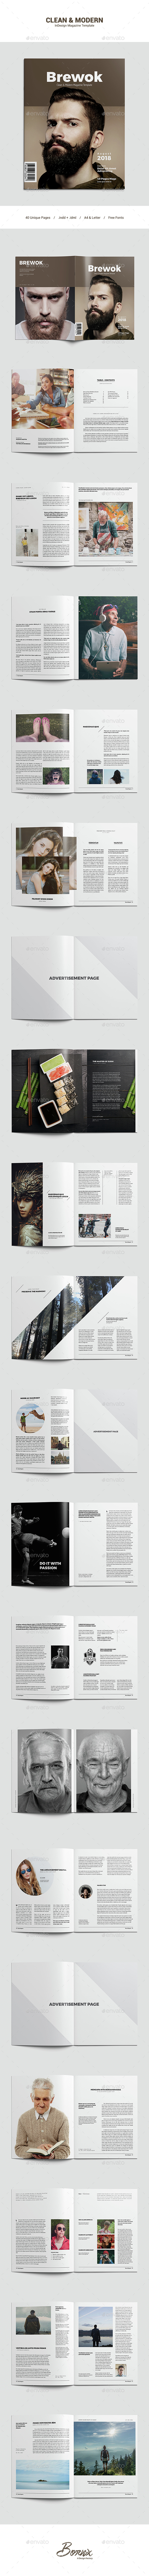 Clean & Modern Magazine Template - Magazines Print Templates